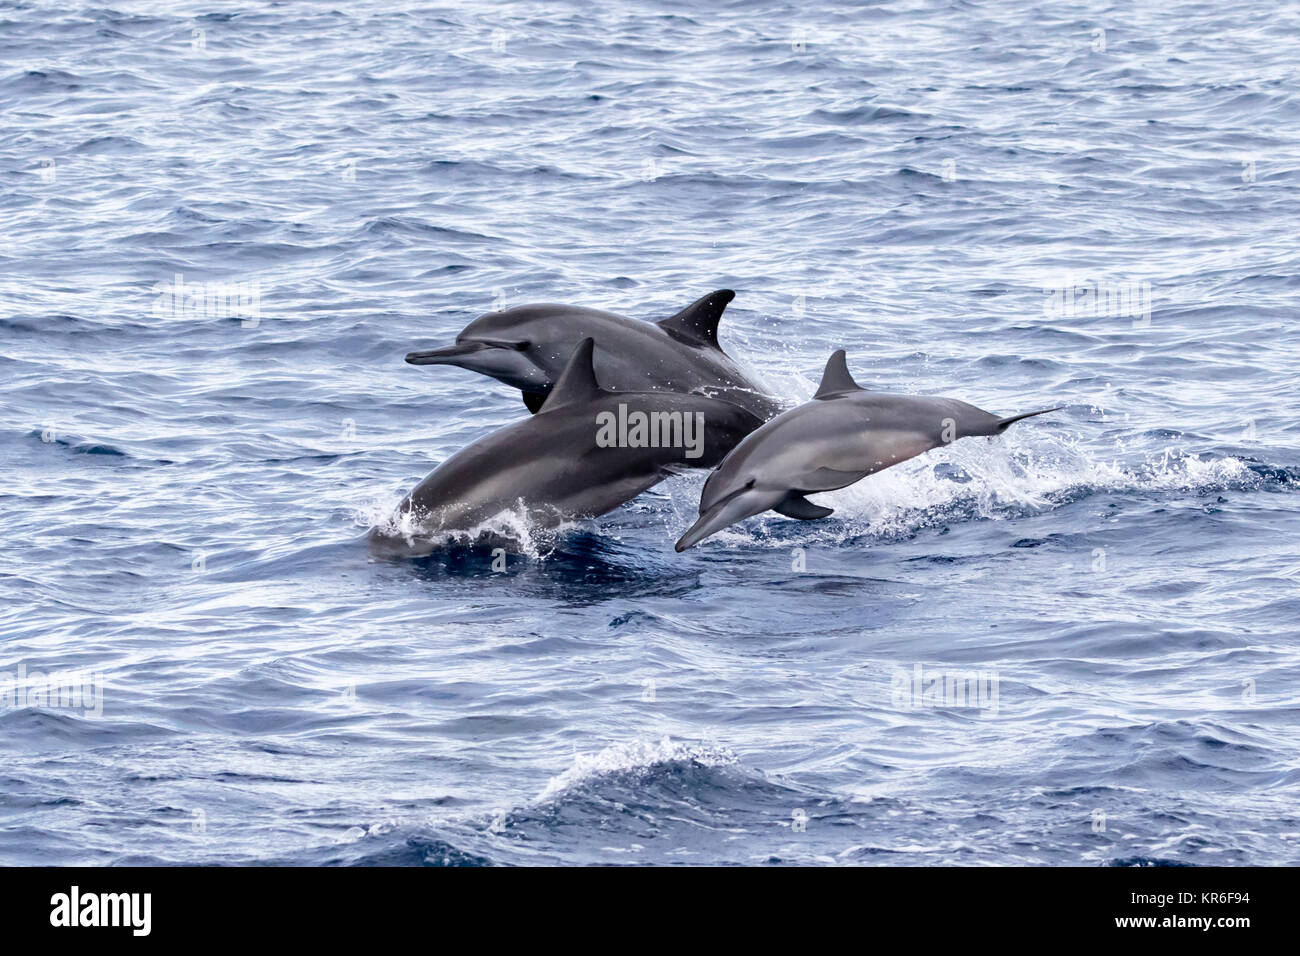 Spinner Dolphin (Stenella longirostris) leaping and coming over to the boat for fun - Stock Image